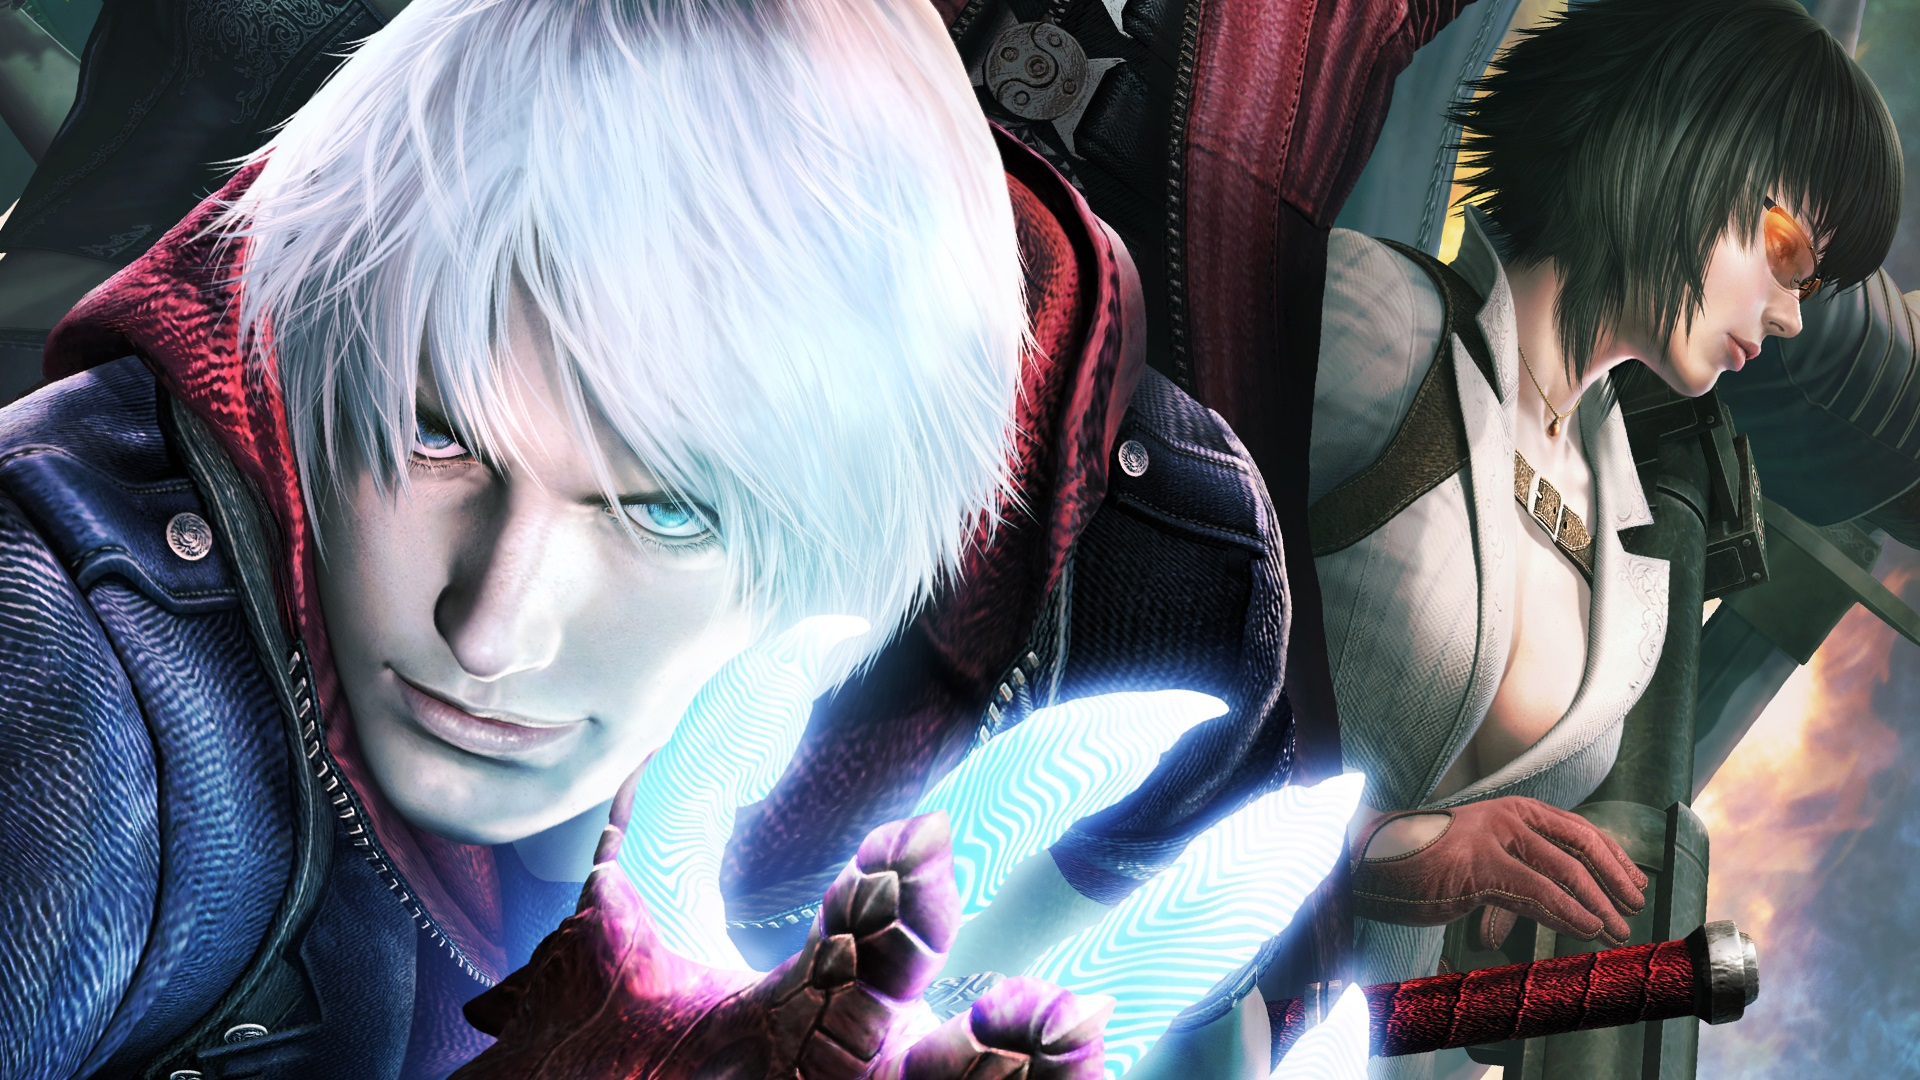 Wallpaper Devil May Cry 4 Special Edition 1920x1080 Full Hd 2k